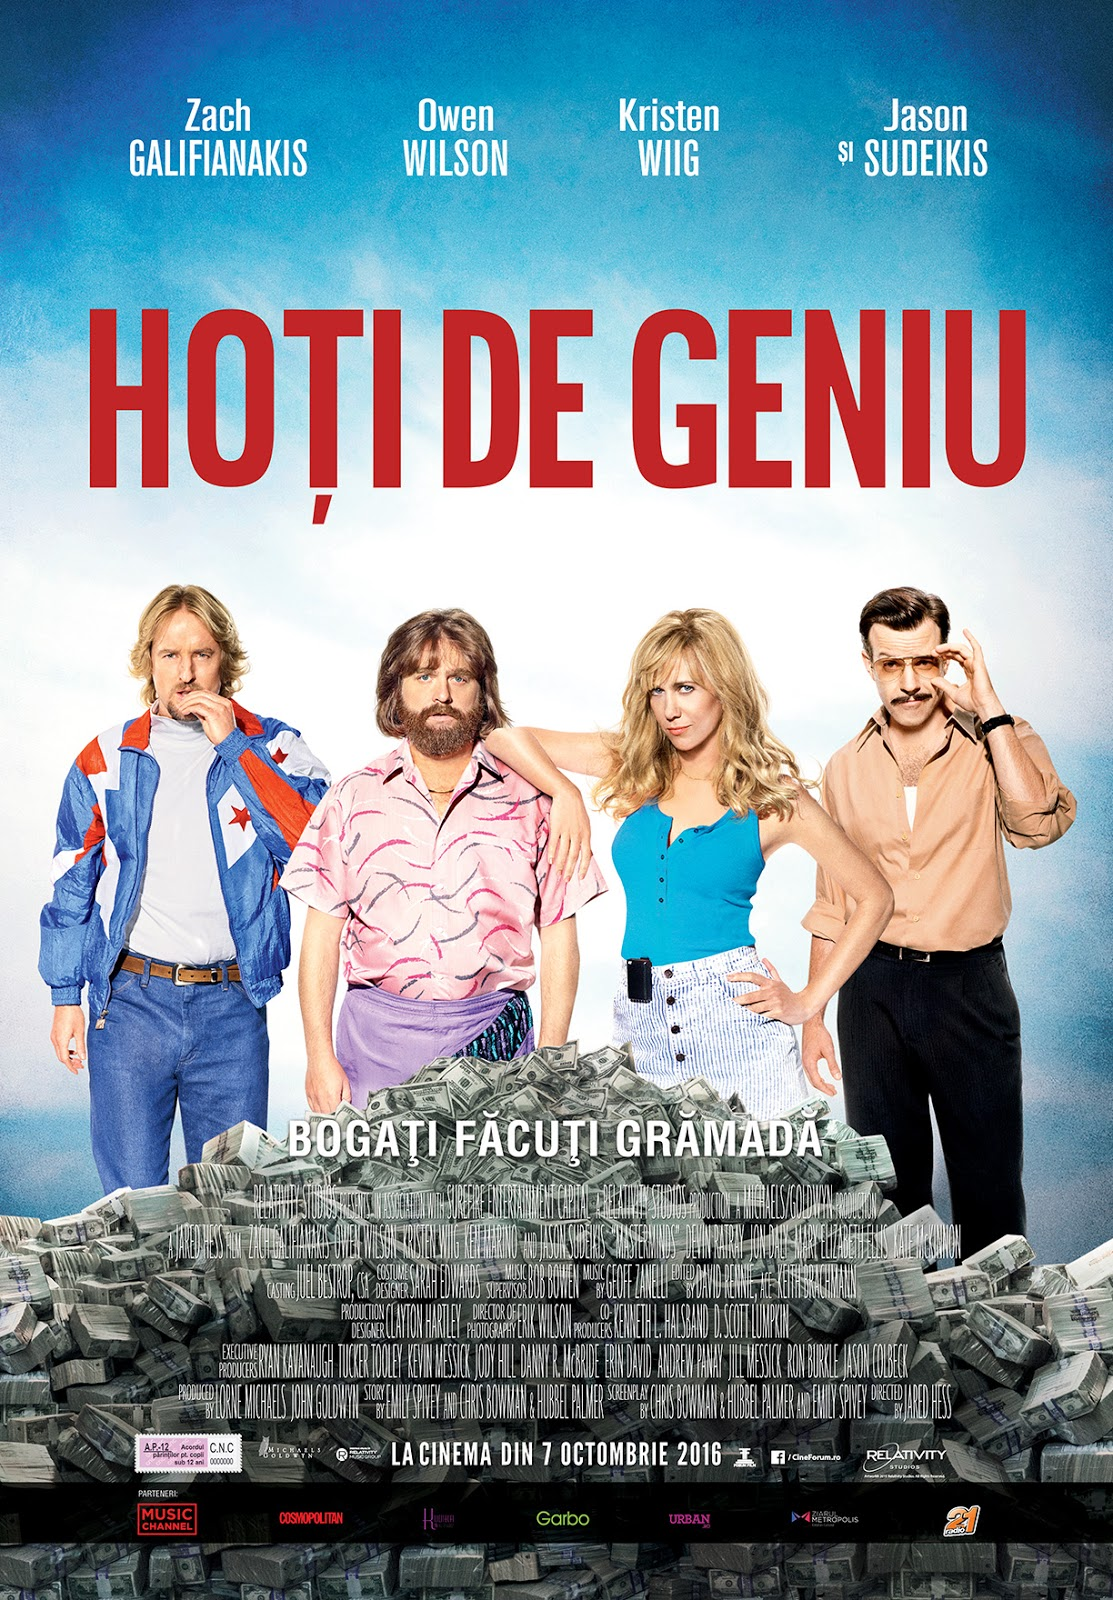 masterminds, hoti de geniu, relativity studios, zach galifianakis, kristen wiig, jared hess, forum film romania, ranevents, comedie, filme, cinema city, forum film, cineforum, disney, fotografii, 7 octombrie, filme noi, filme bune, filme 2016, comedii, comedii 2016, bloggeri, movie bloggers, best movies, best comedies, romania, blog, silviu pal